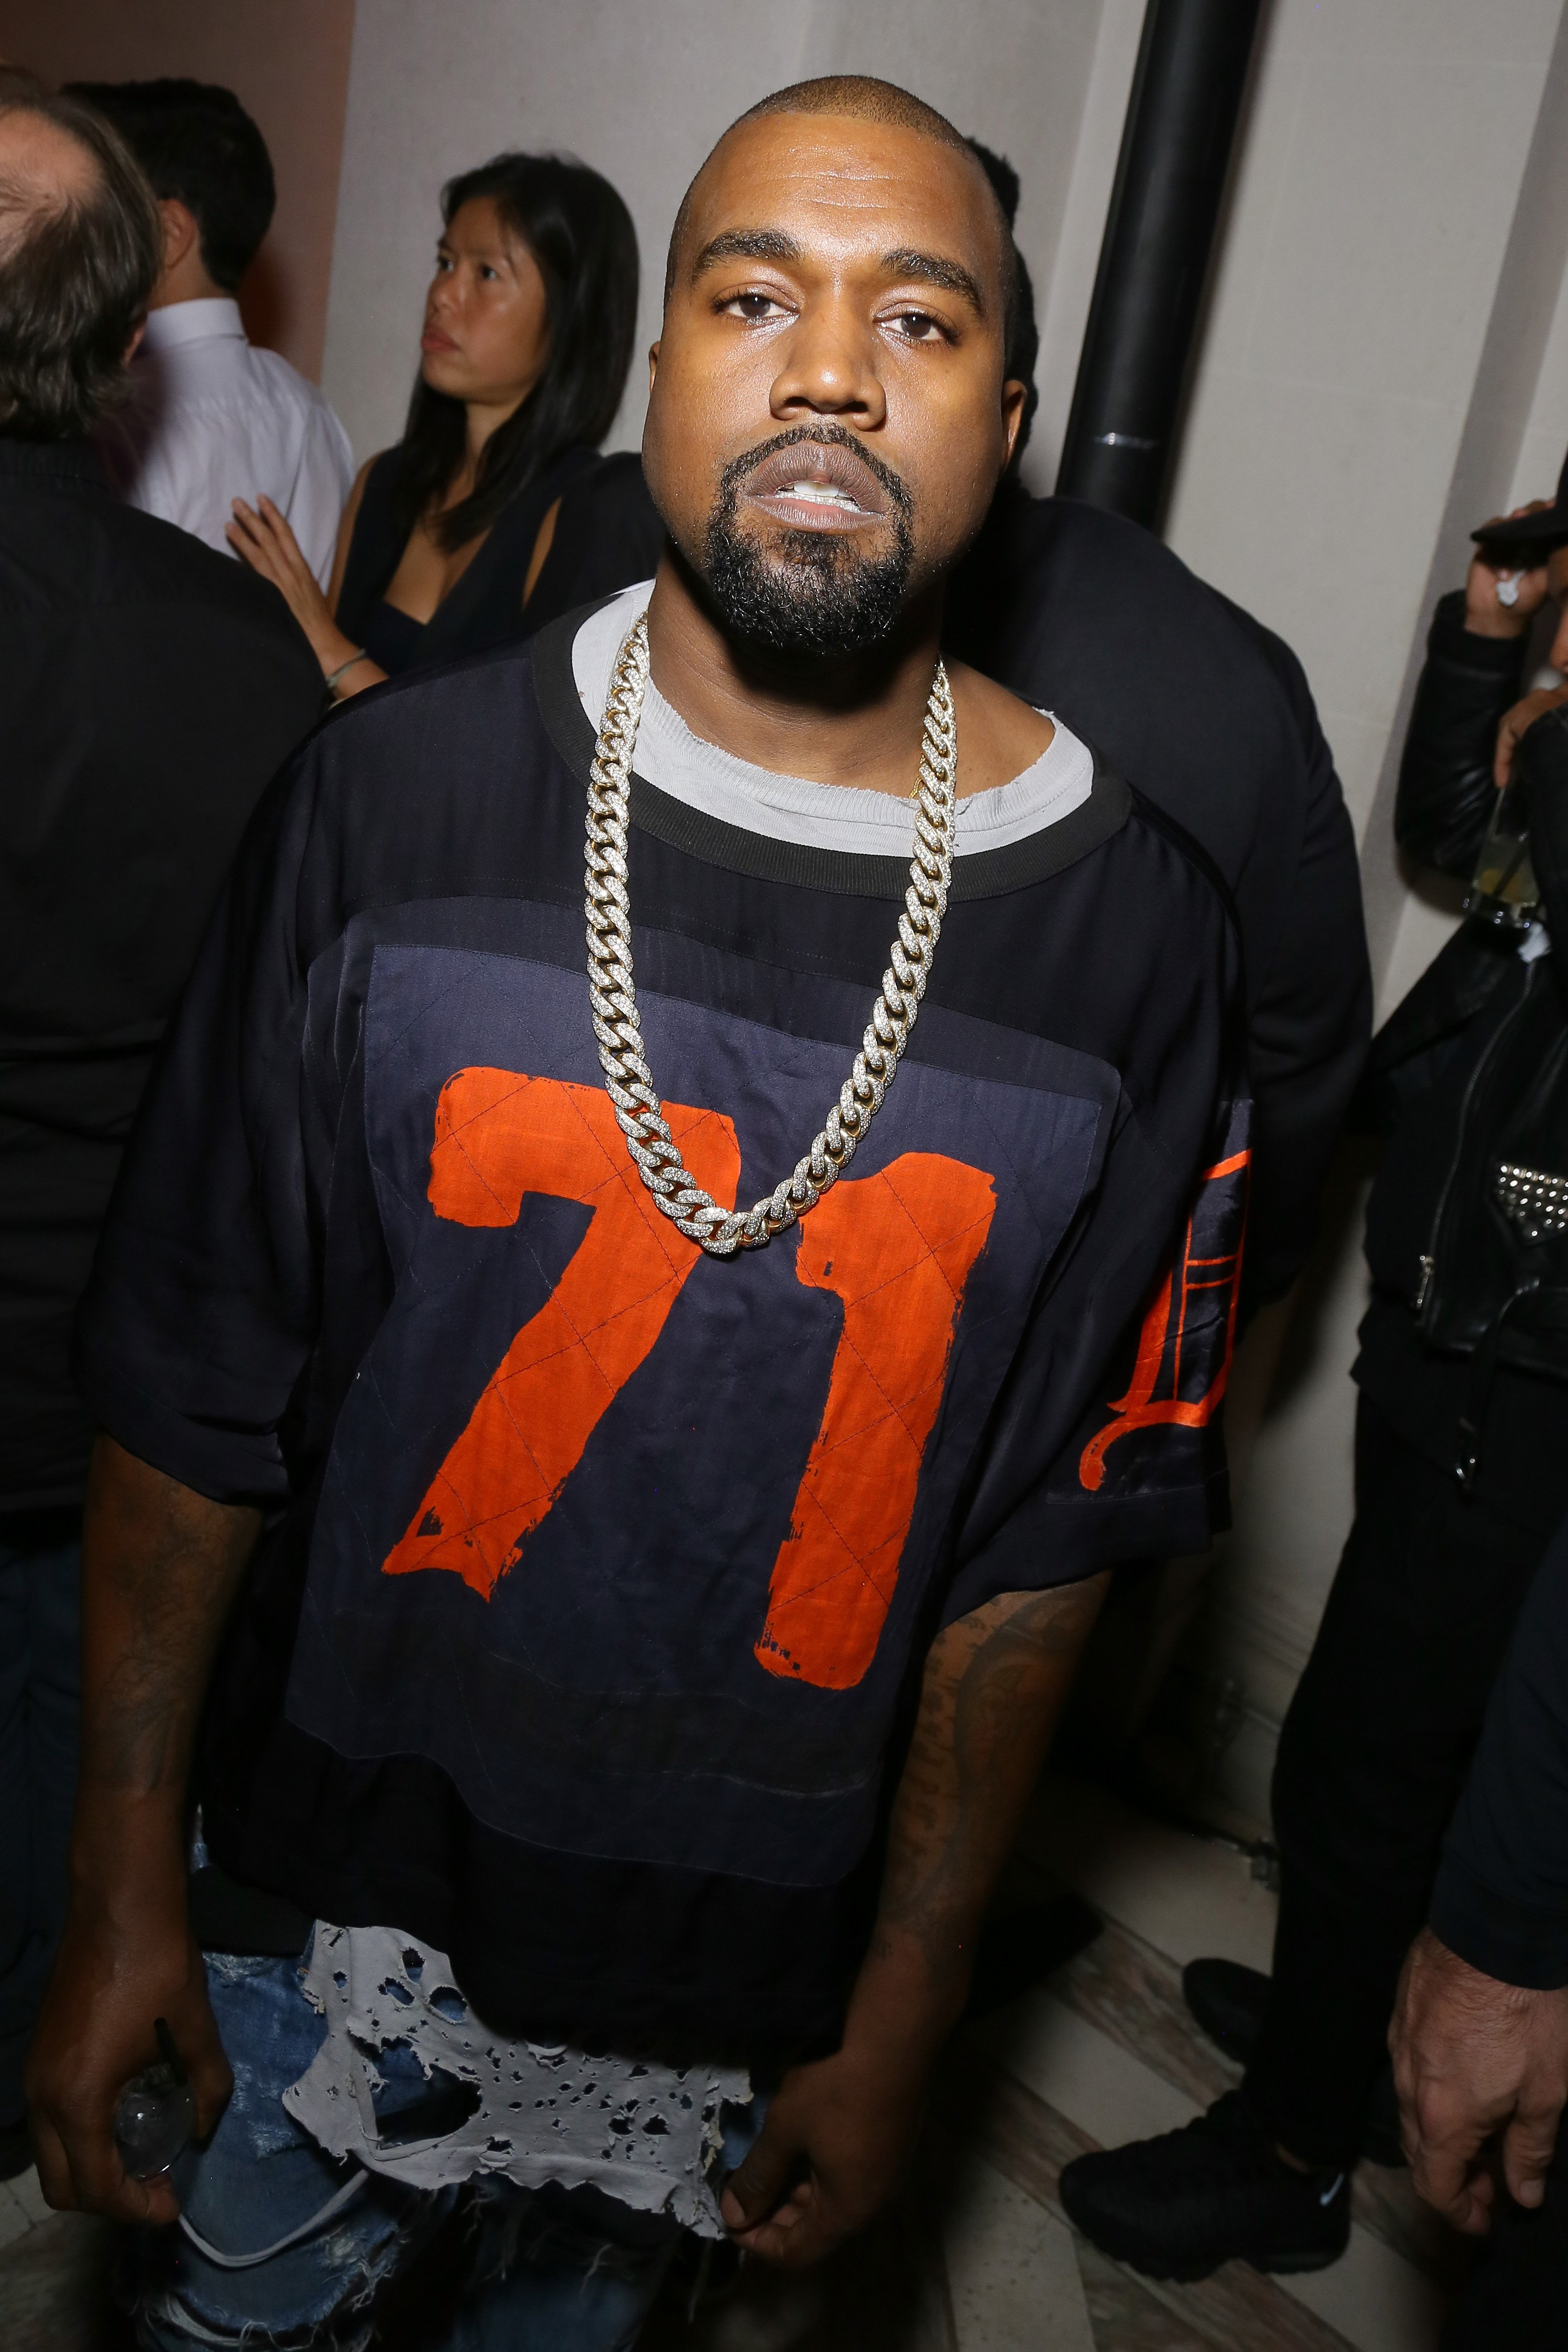 Kanye West attends Vogue 95th Anniversary Party on October 3, 2015 in Paris, France. | Source: Getty Images